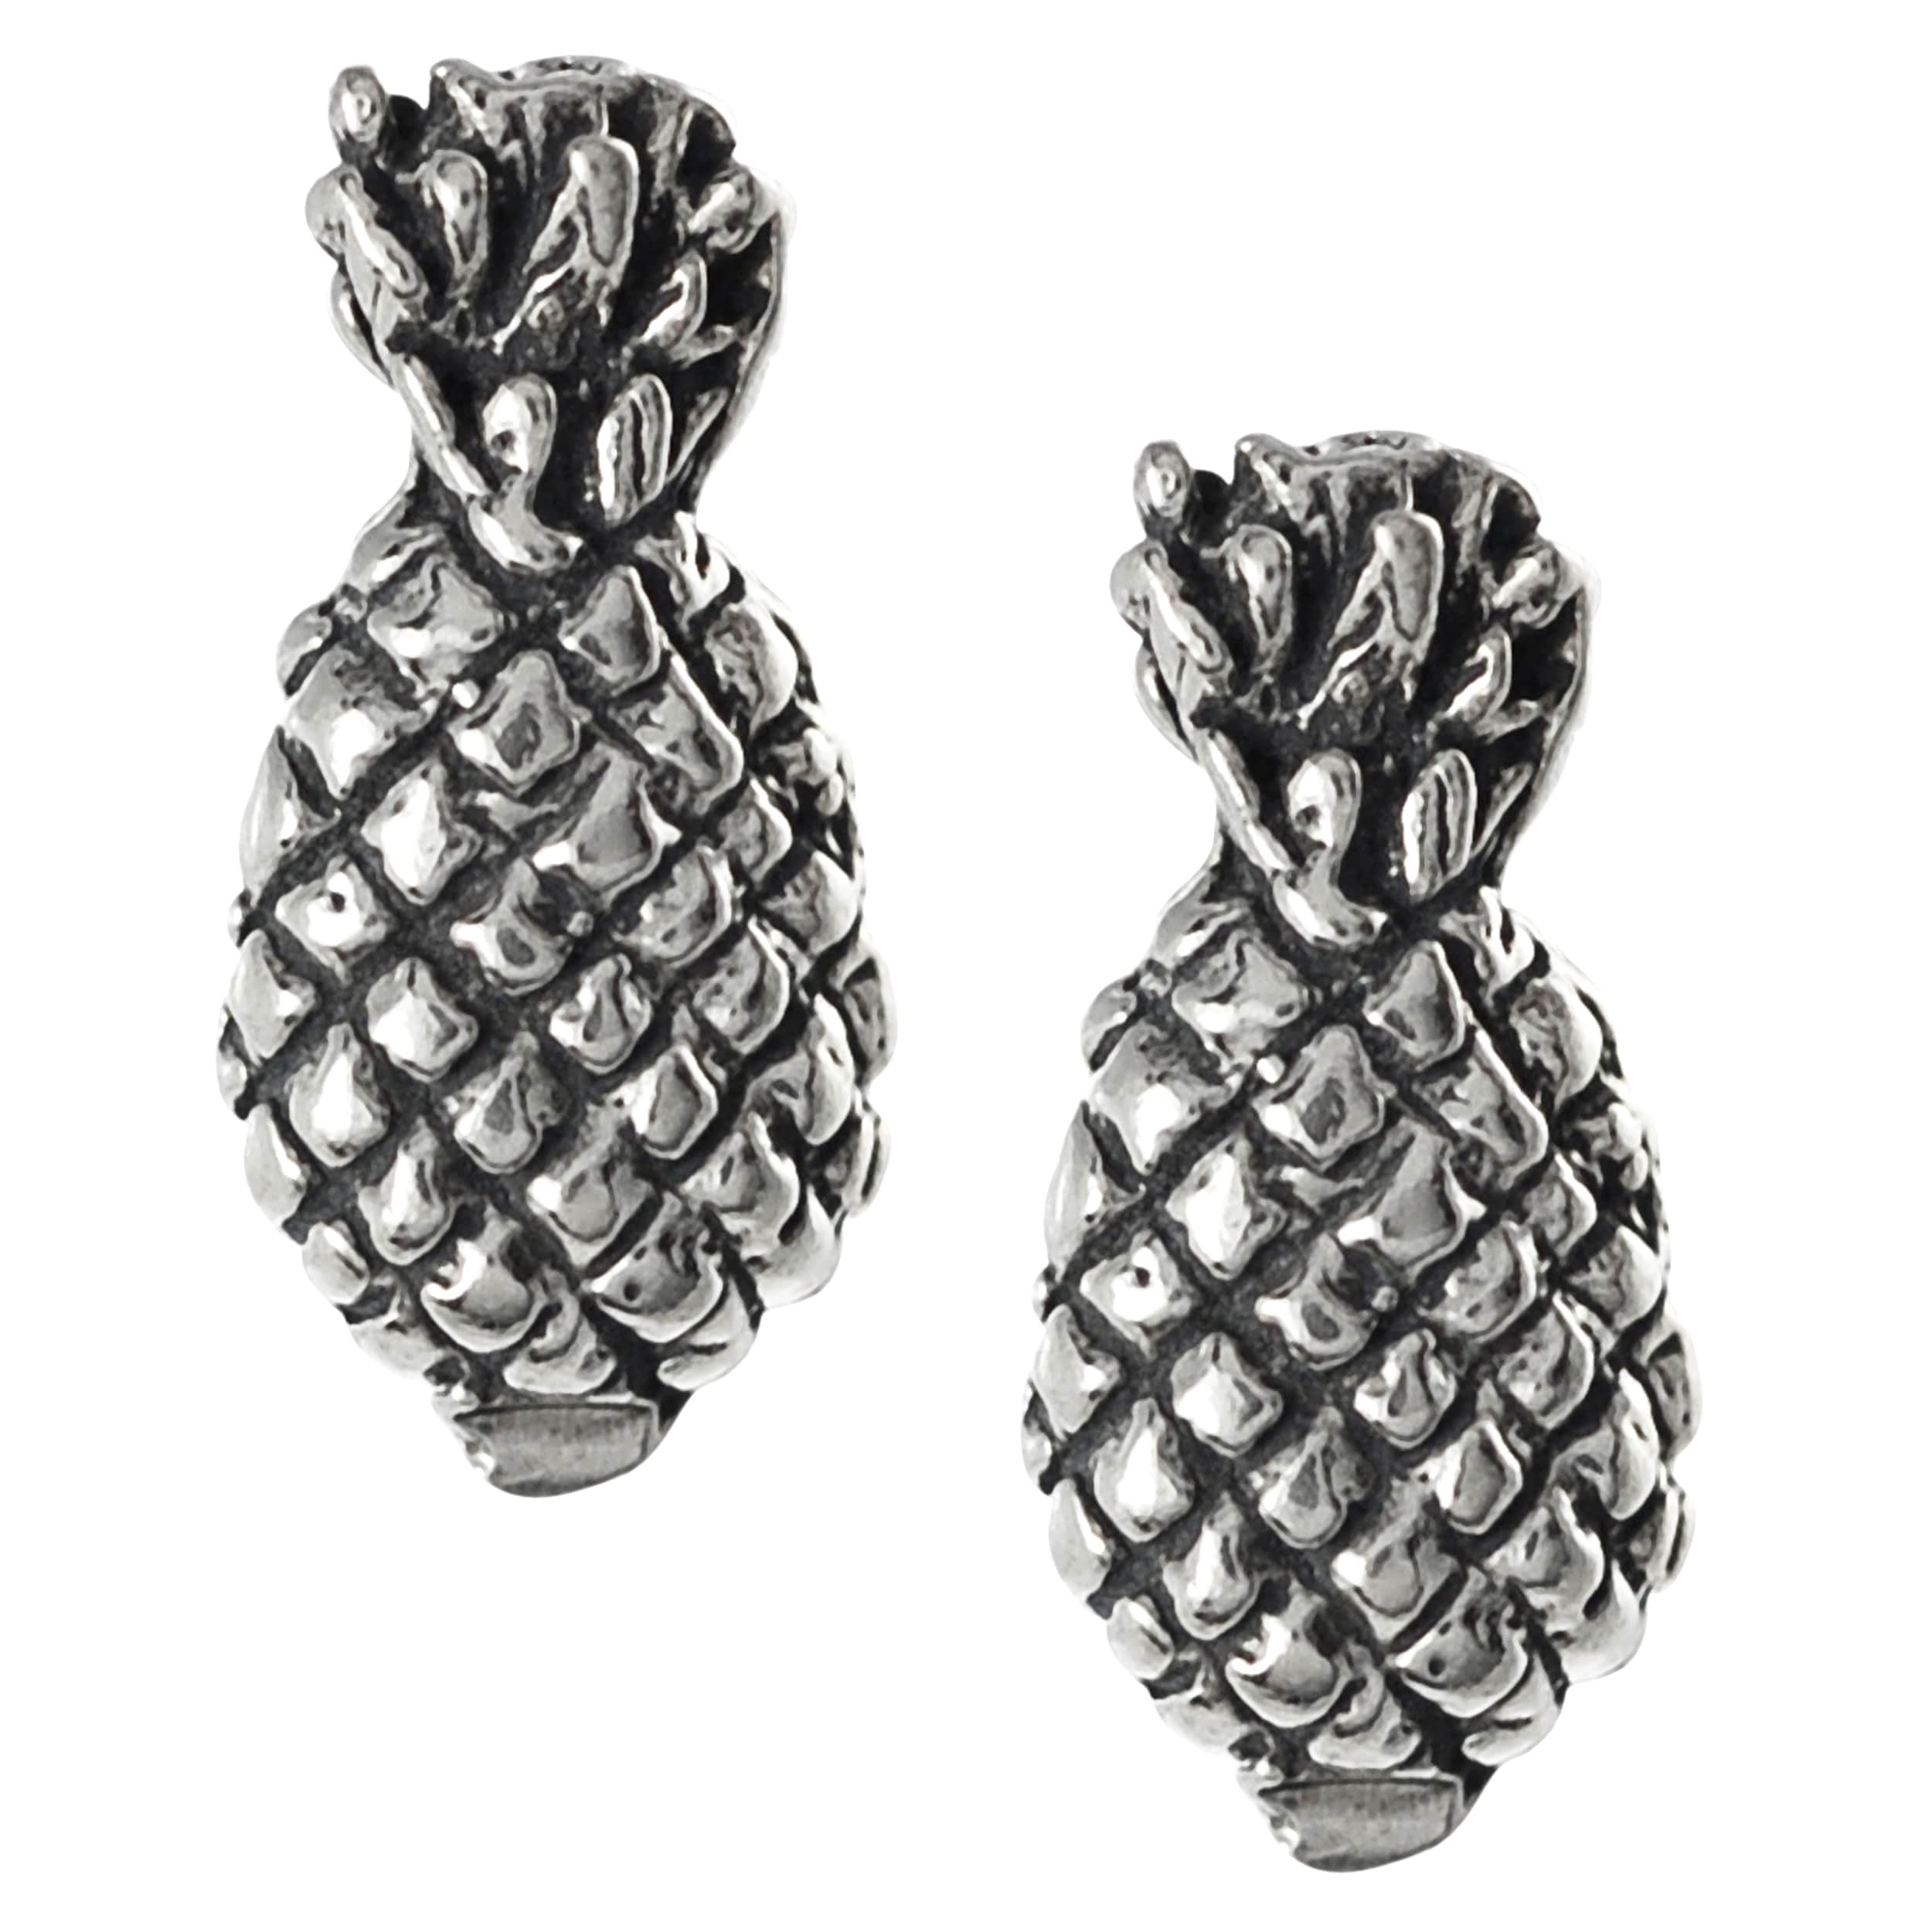 pineapples torquay sunkissed product pineapple stud earrings